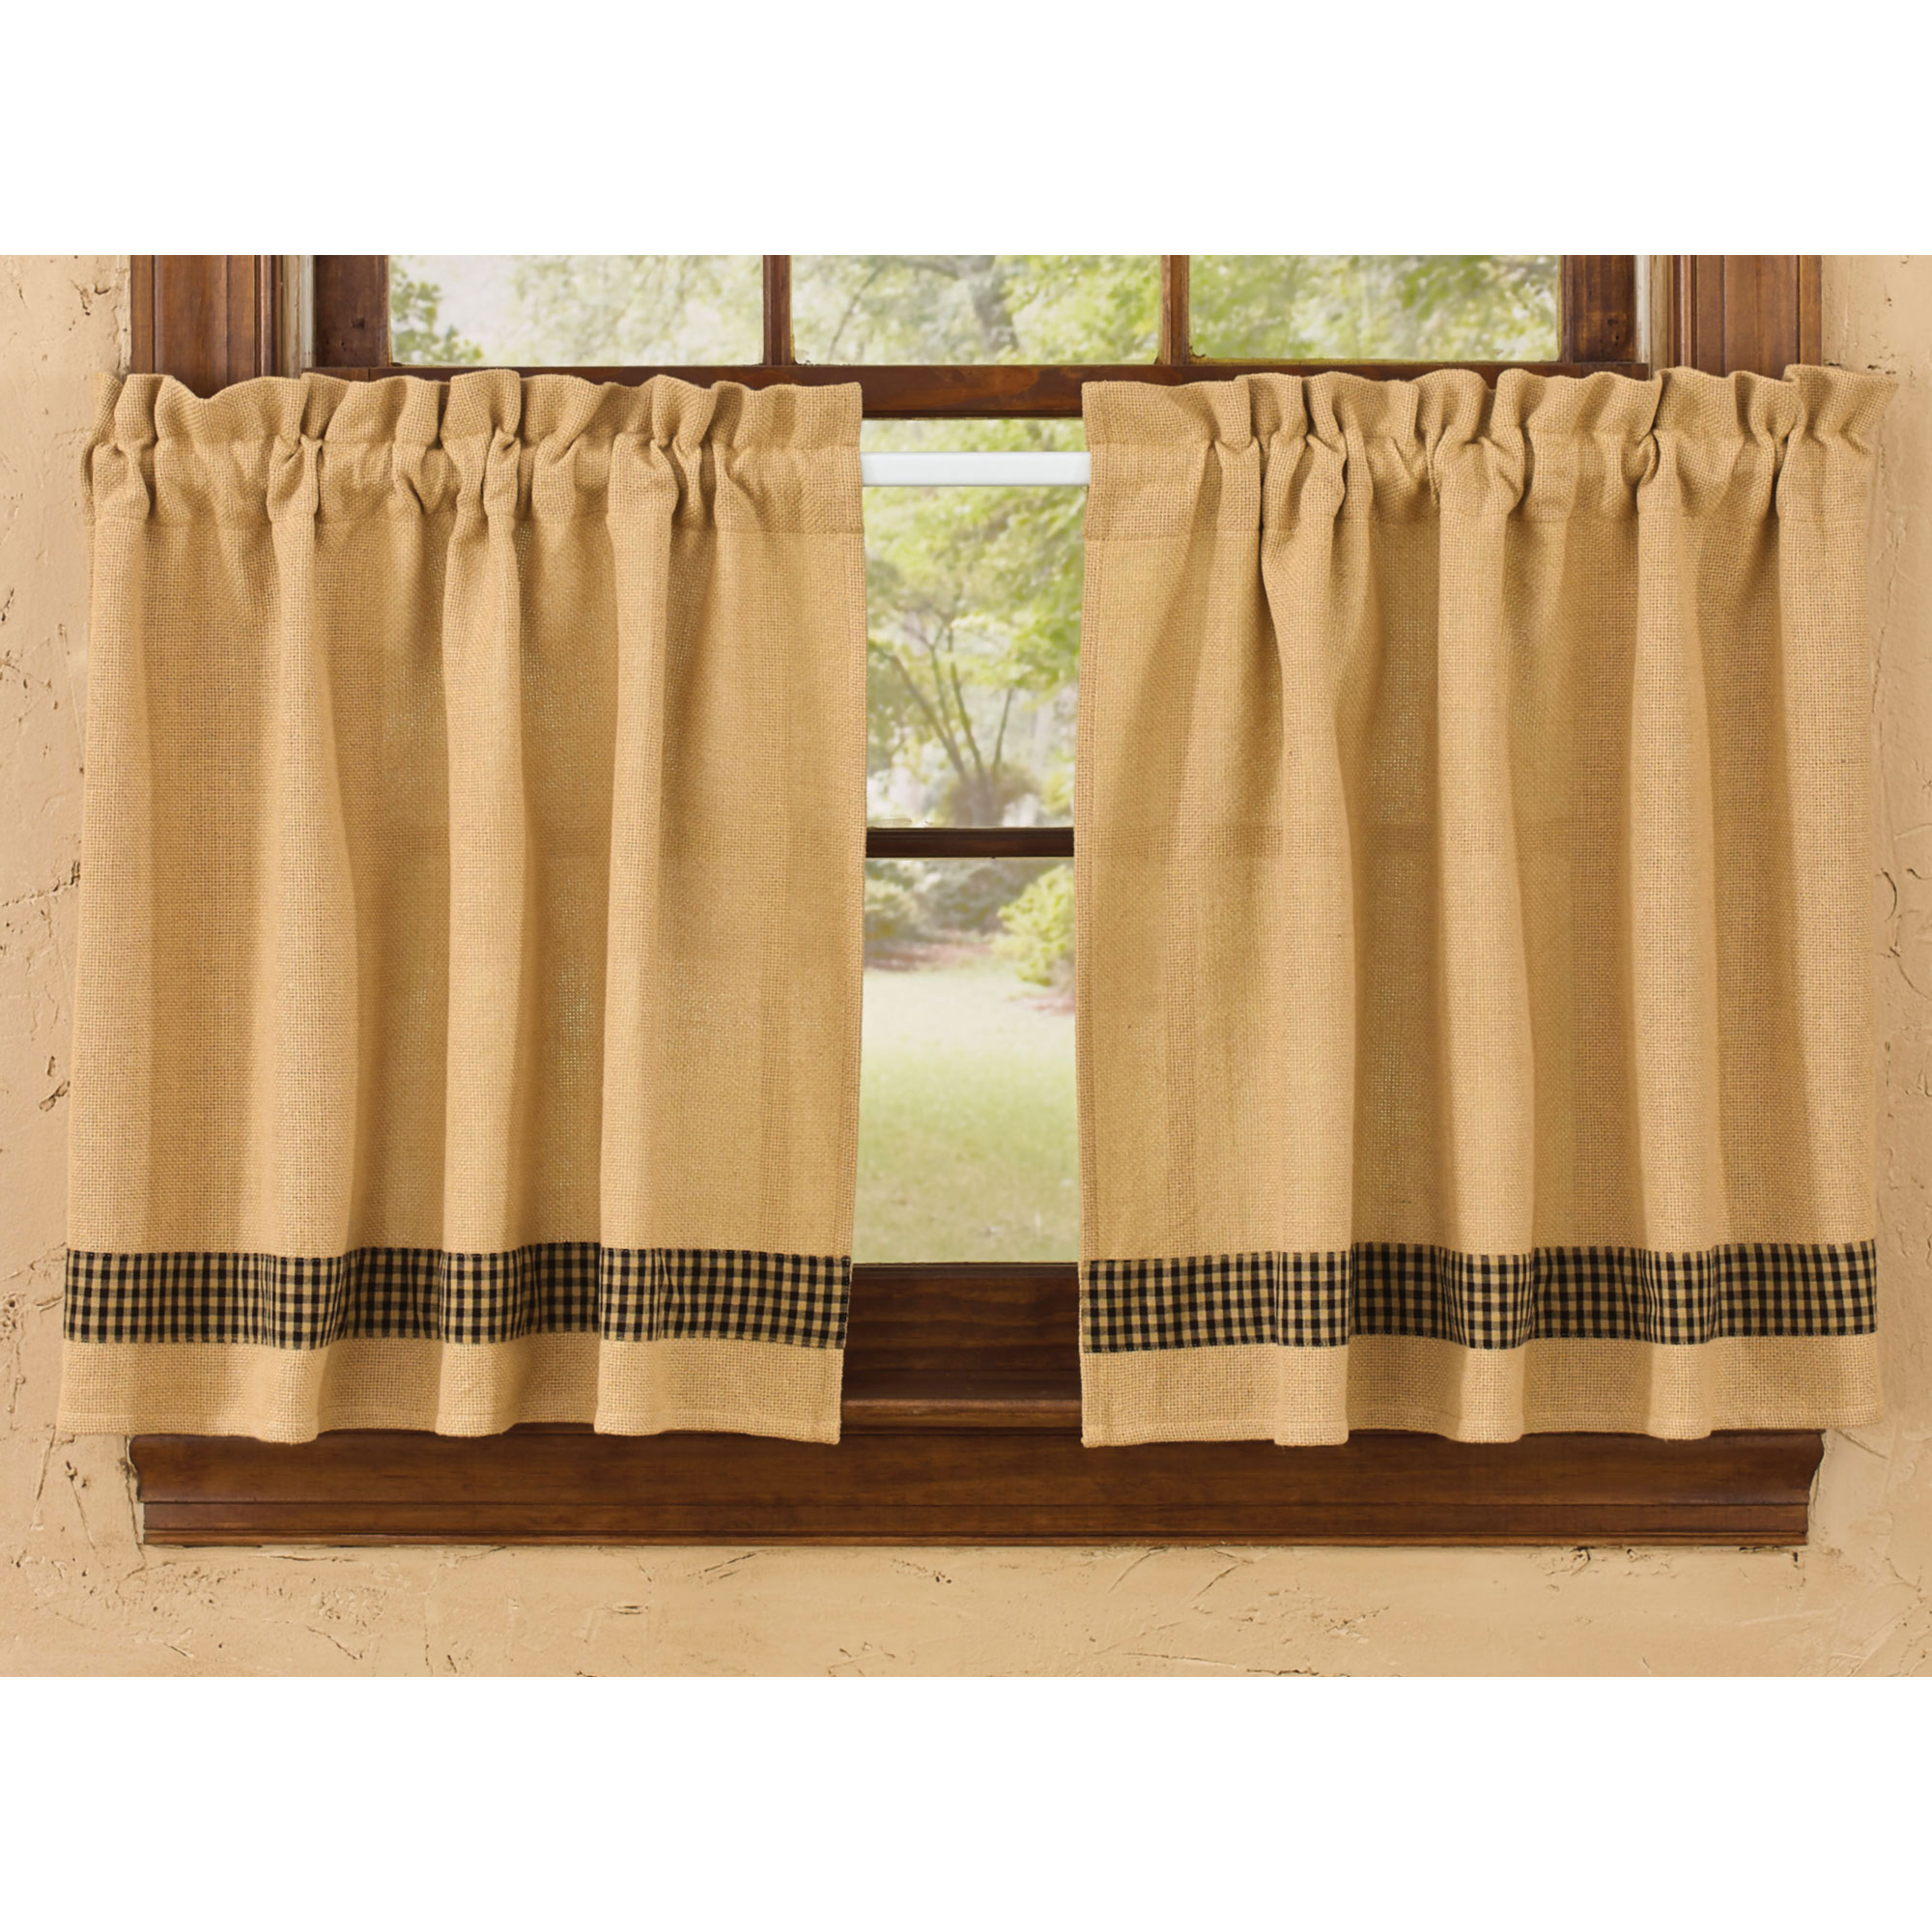 Burlap And Check Unlined Curtain Tiers By Park Designs 24